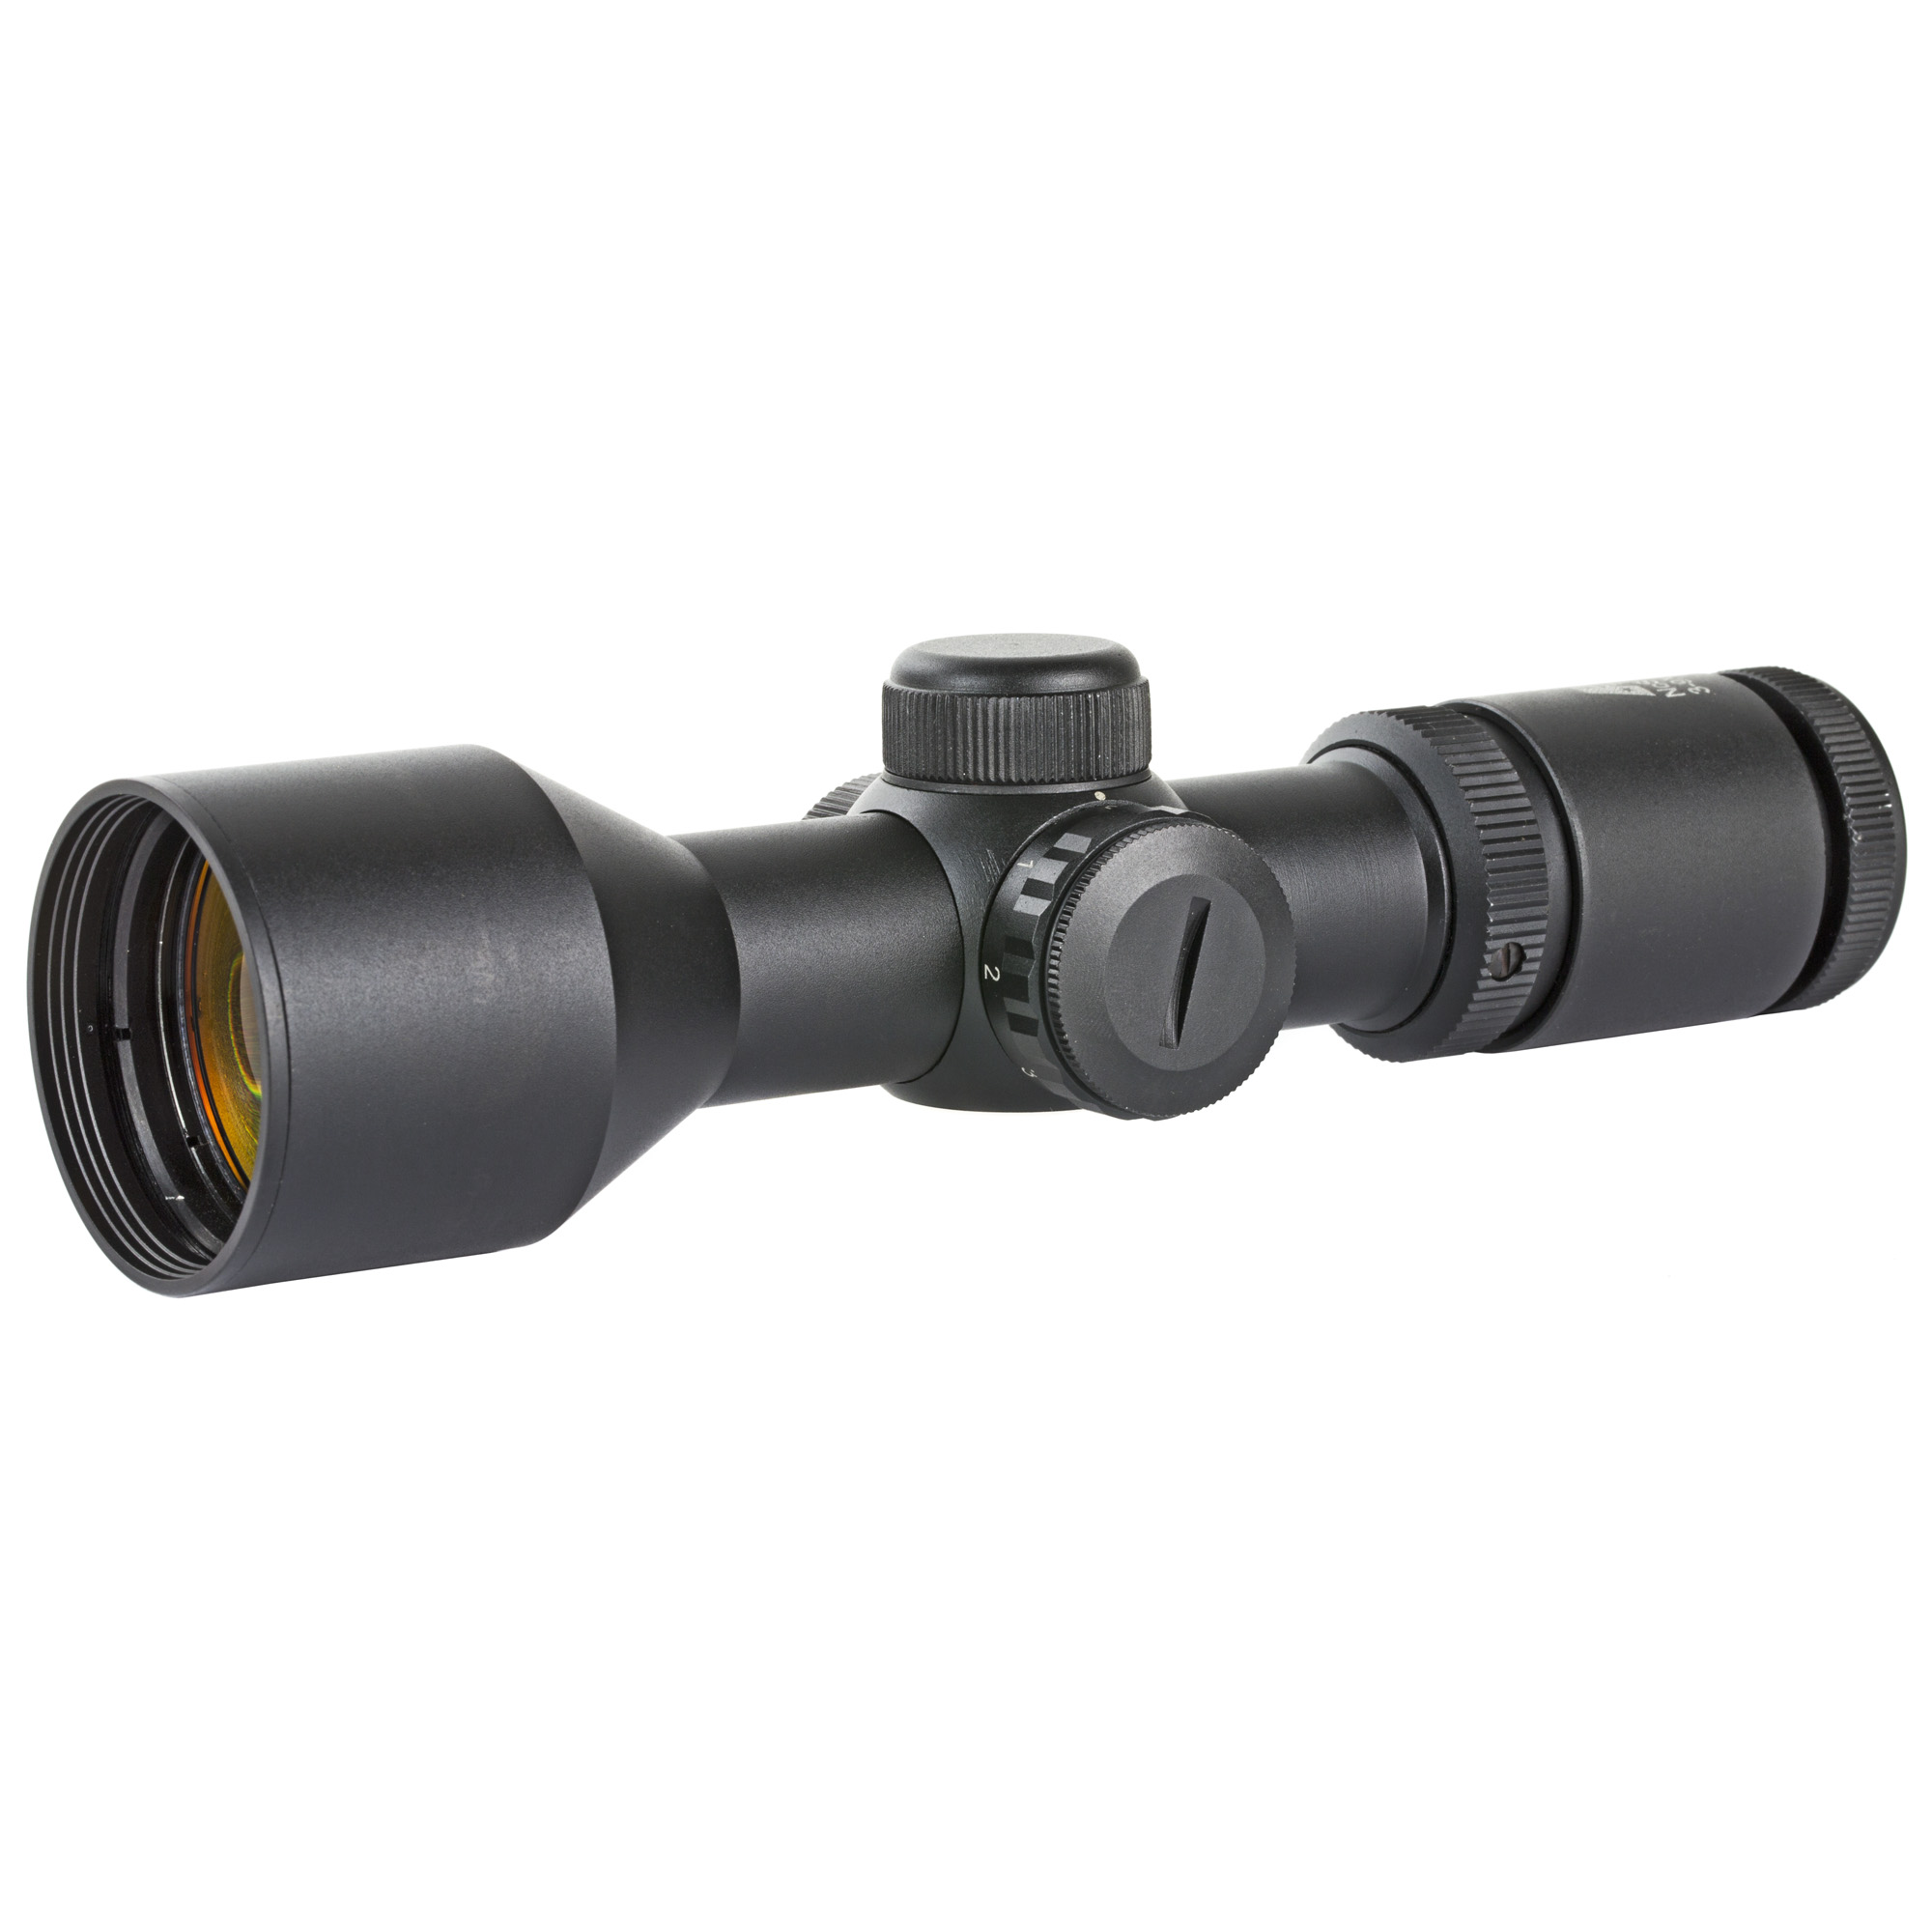 Ncstar Compact Scope 3-9x42